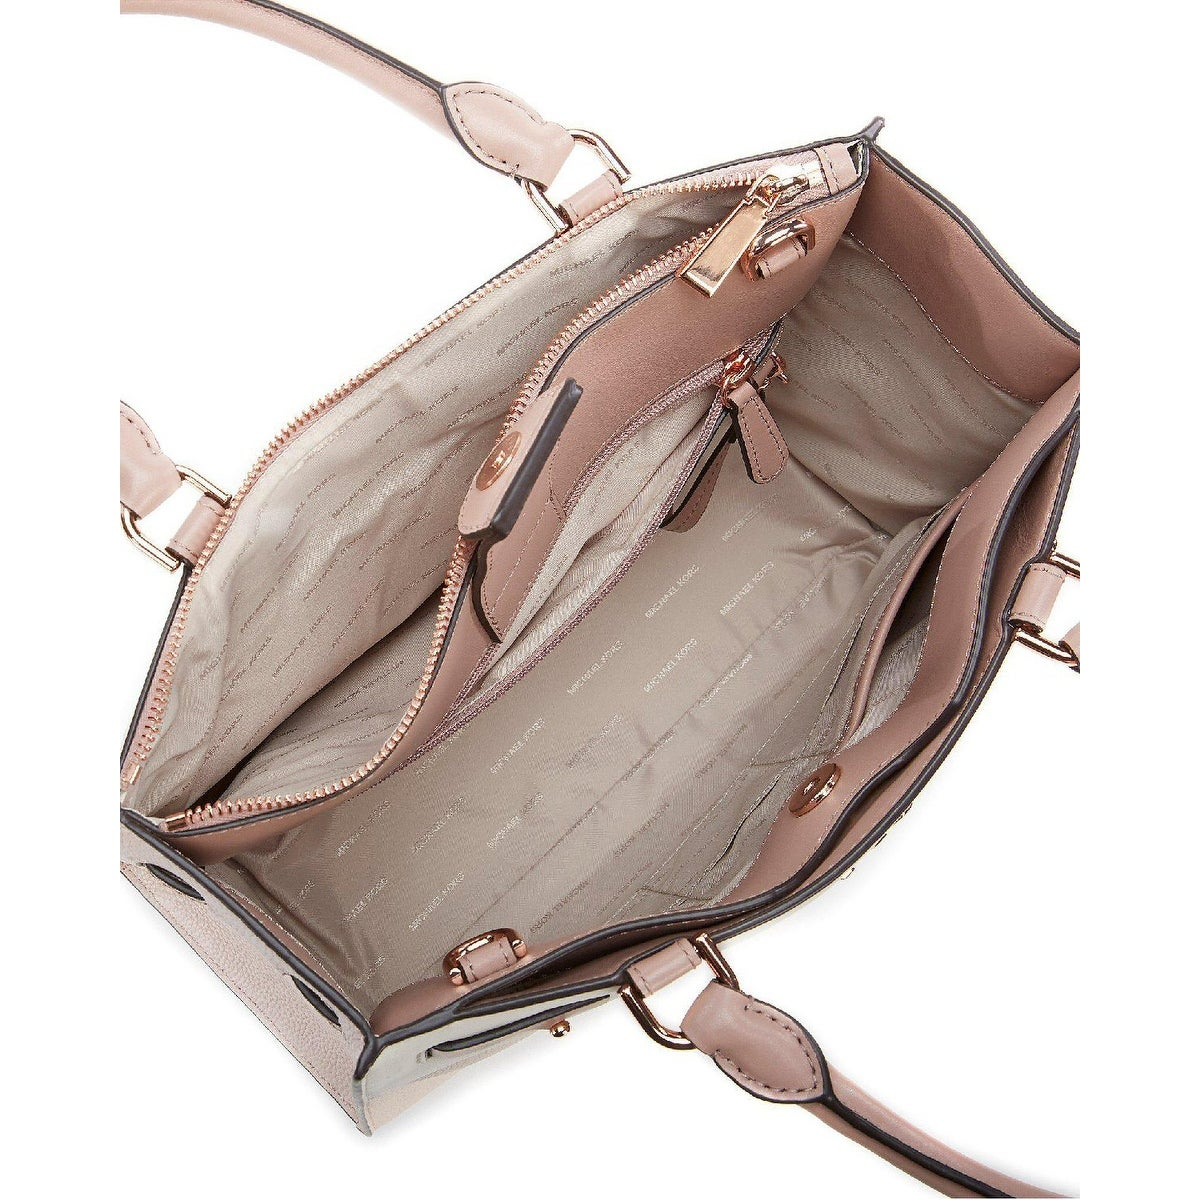 5ed35fb2f29ec5 Shop MICHAEL Michael Kors Reagan Large Leather Satchel Soft Pink/Light  Cream/Fawn - One Size - Free Shipping Today - Overstock - 27296242